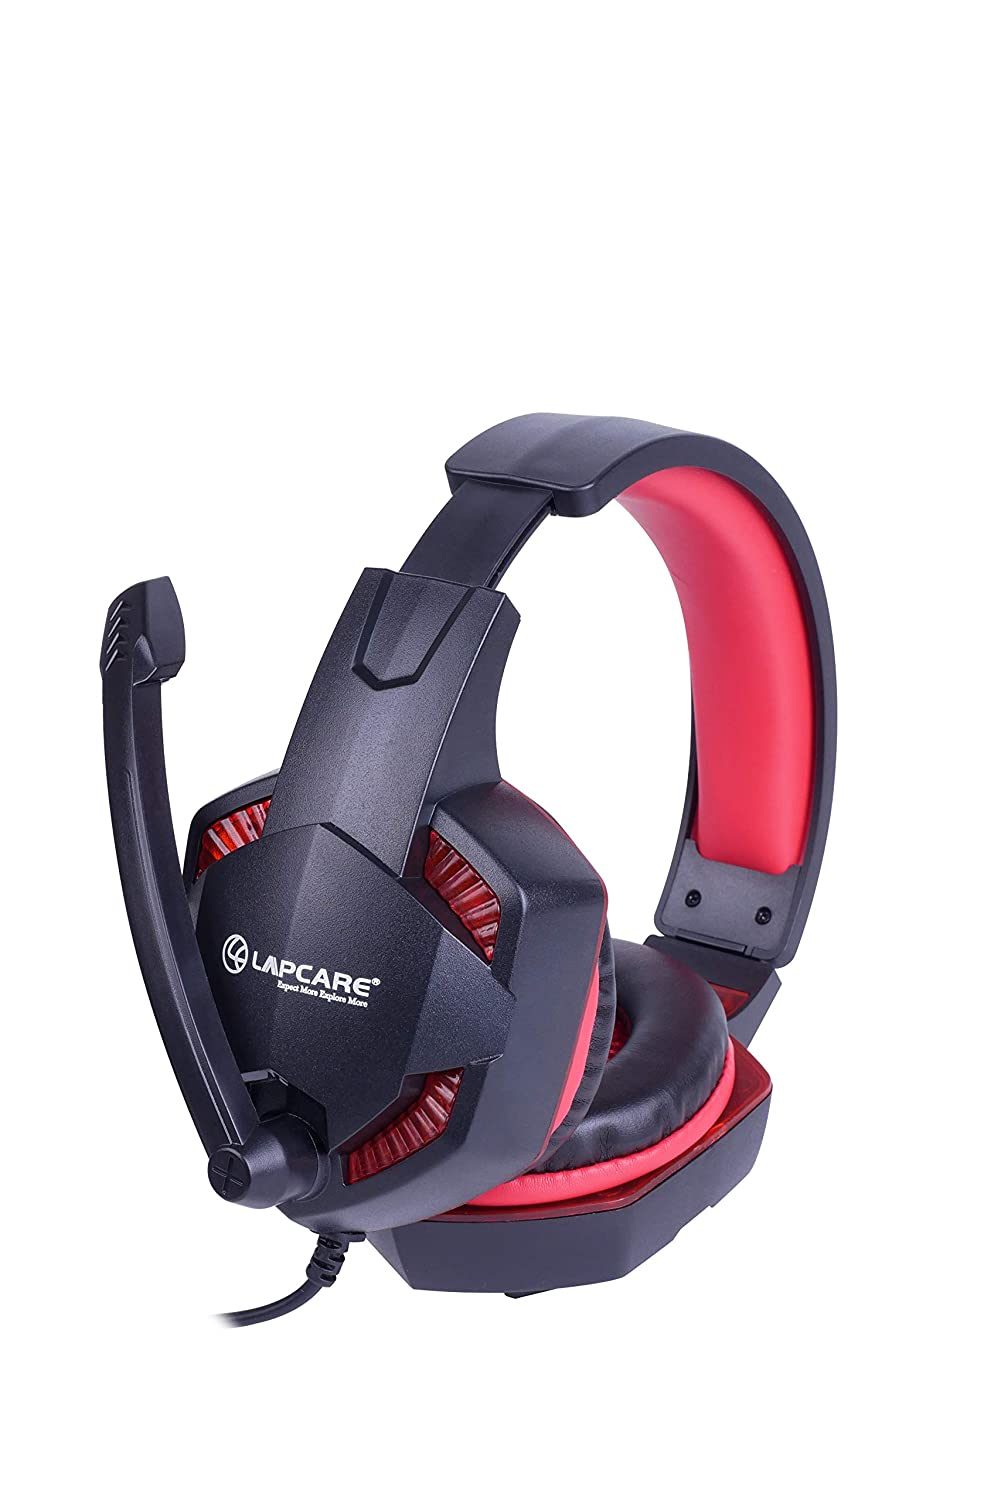 LAPCARE Super BASS Gaming Headphone HD GAMIMG Headset with MIC